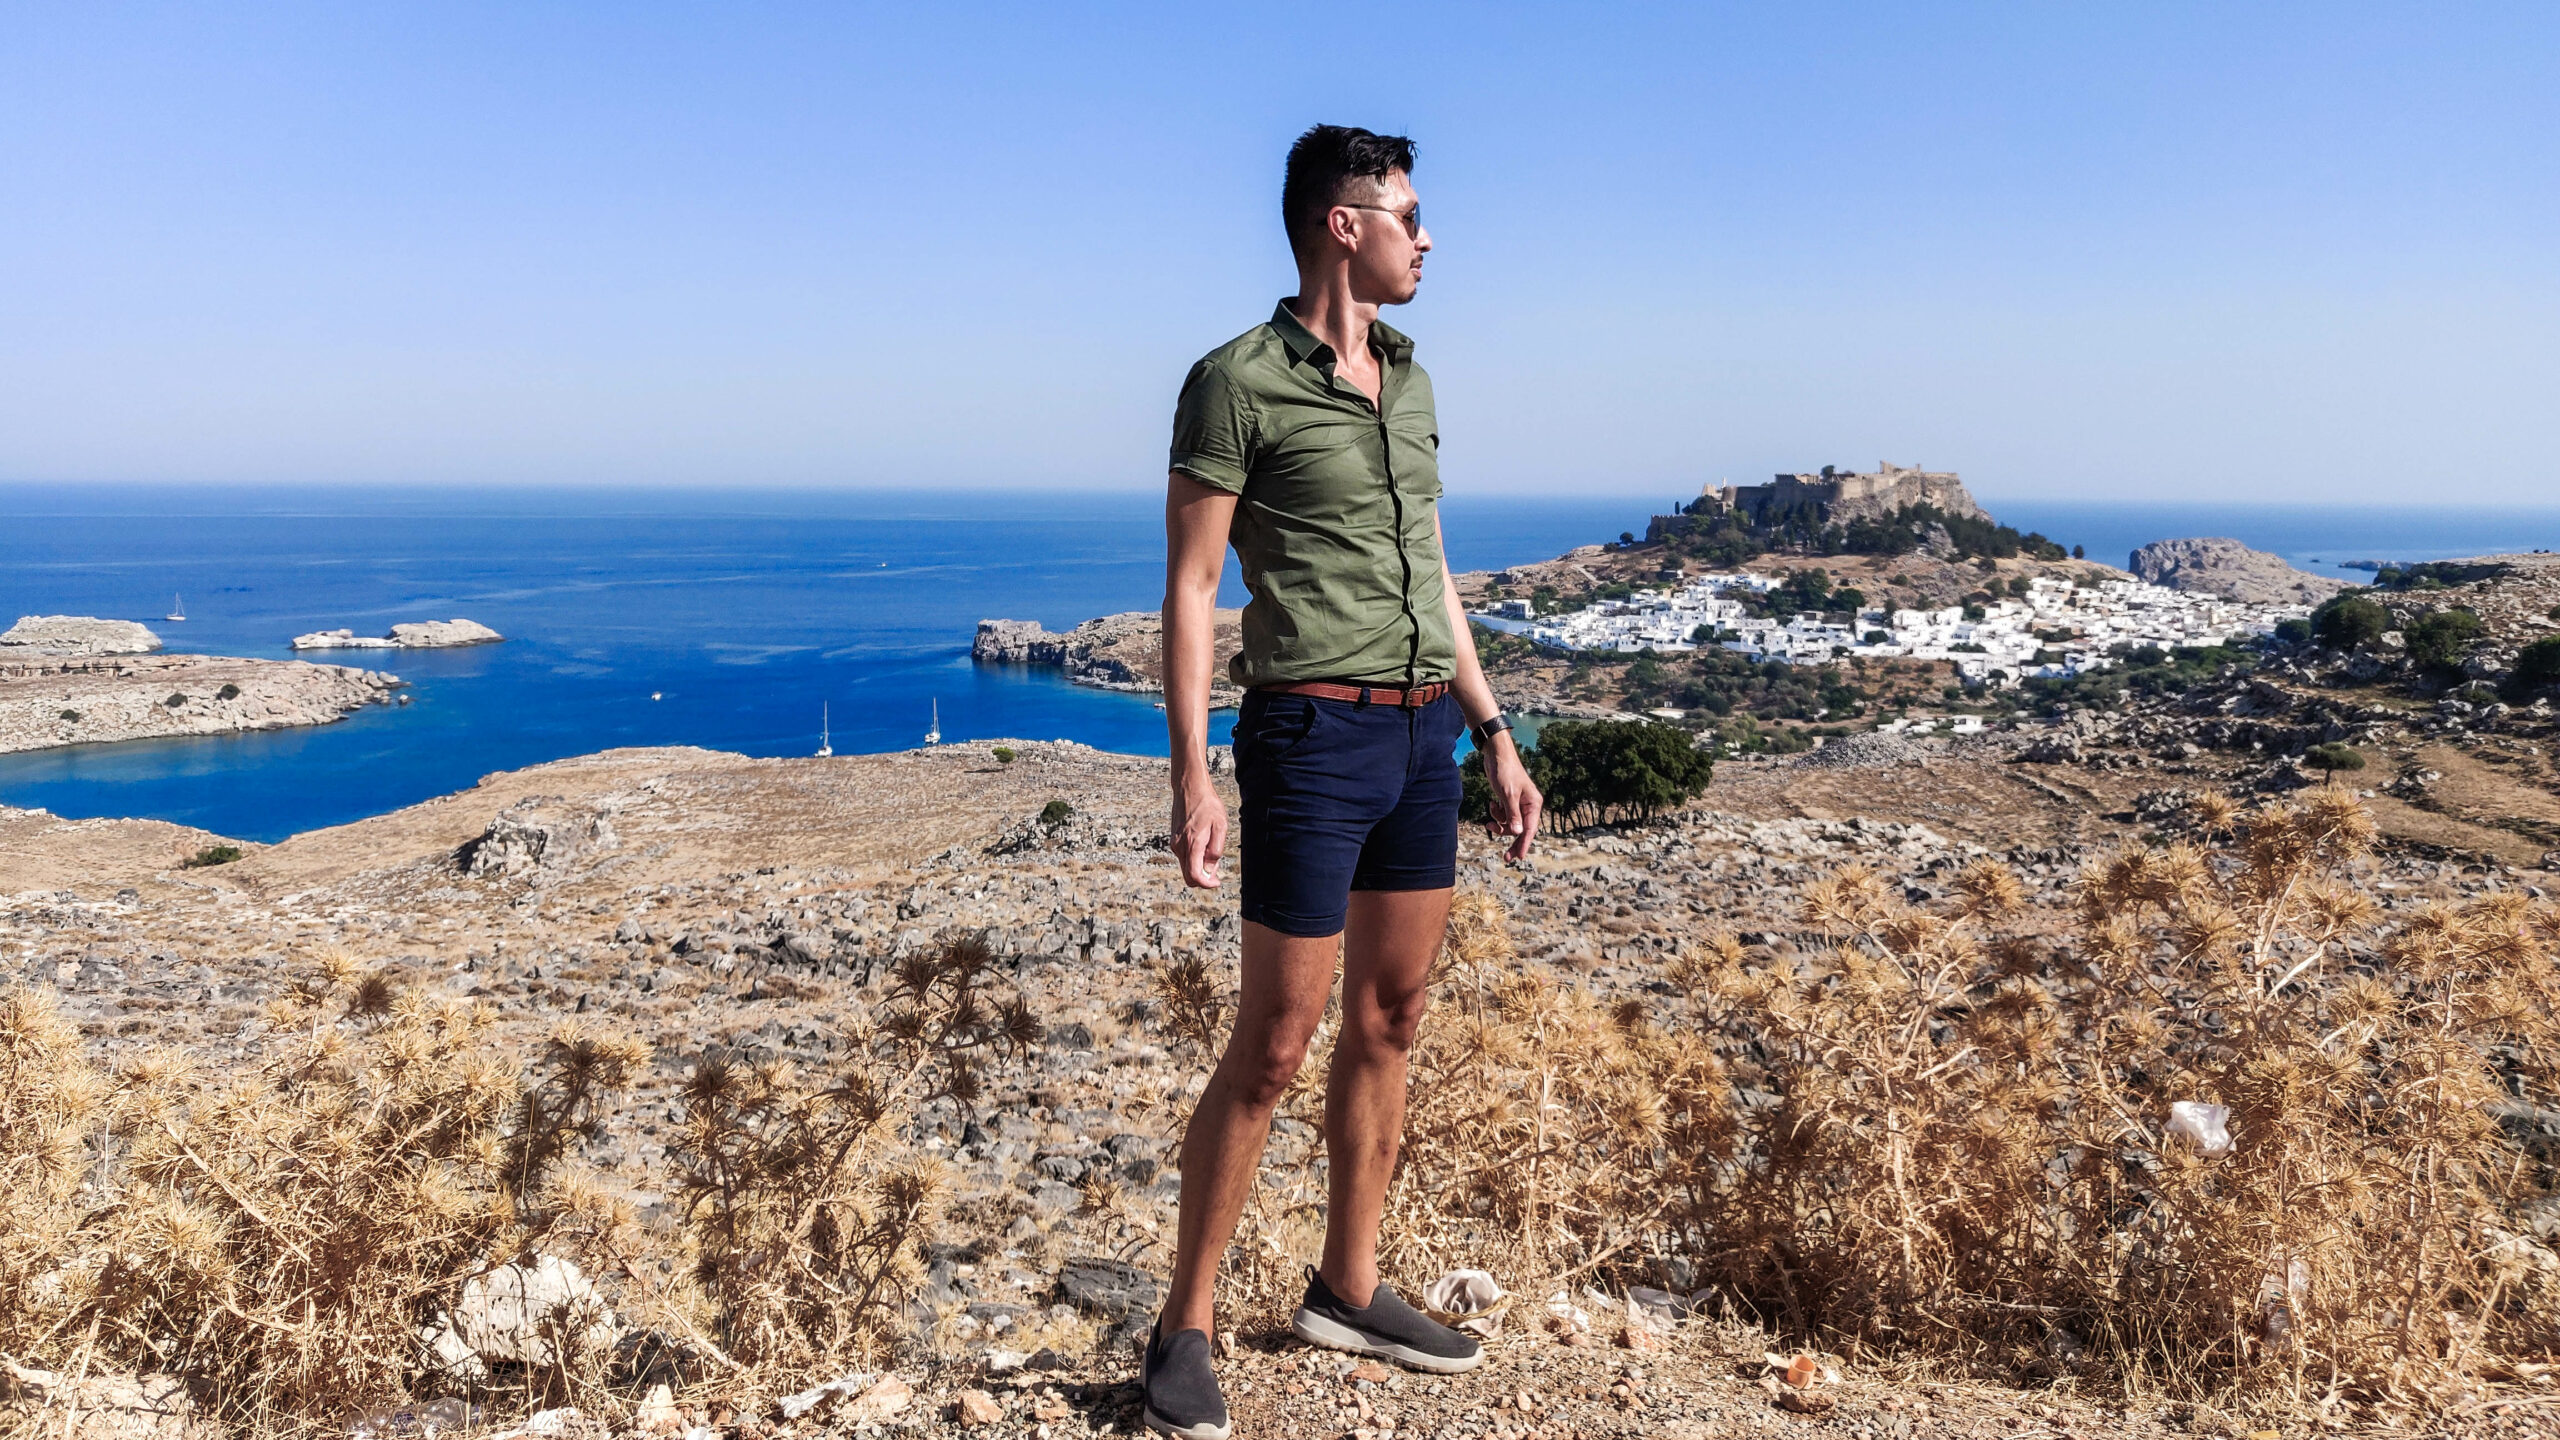 Lindos Λίνδος: The Most Picturesque City on Rhodes